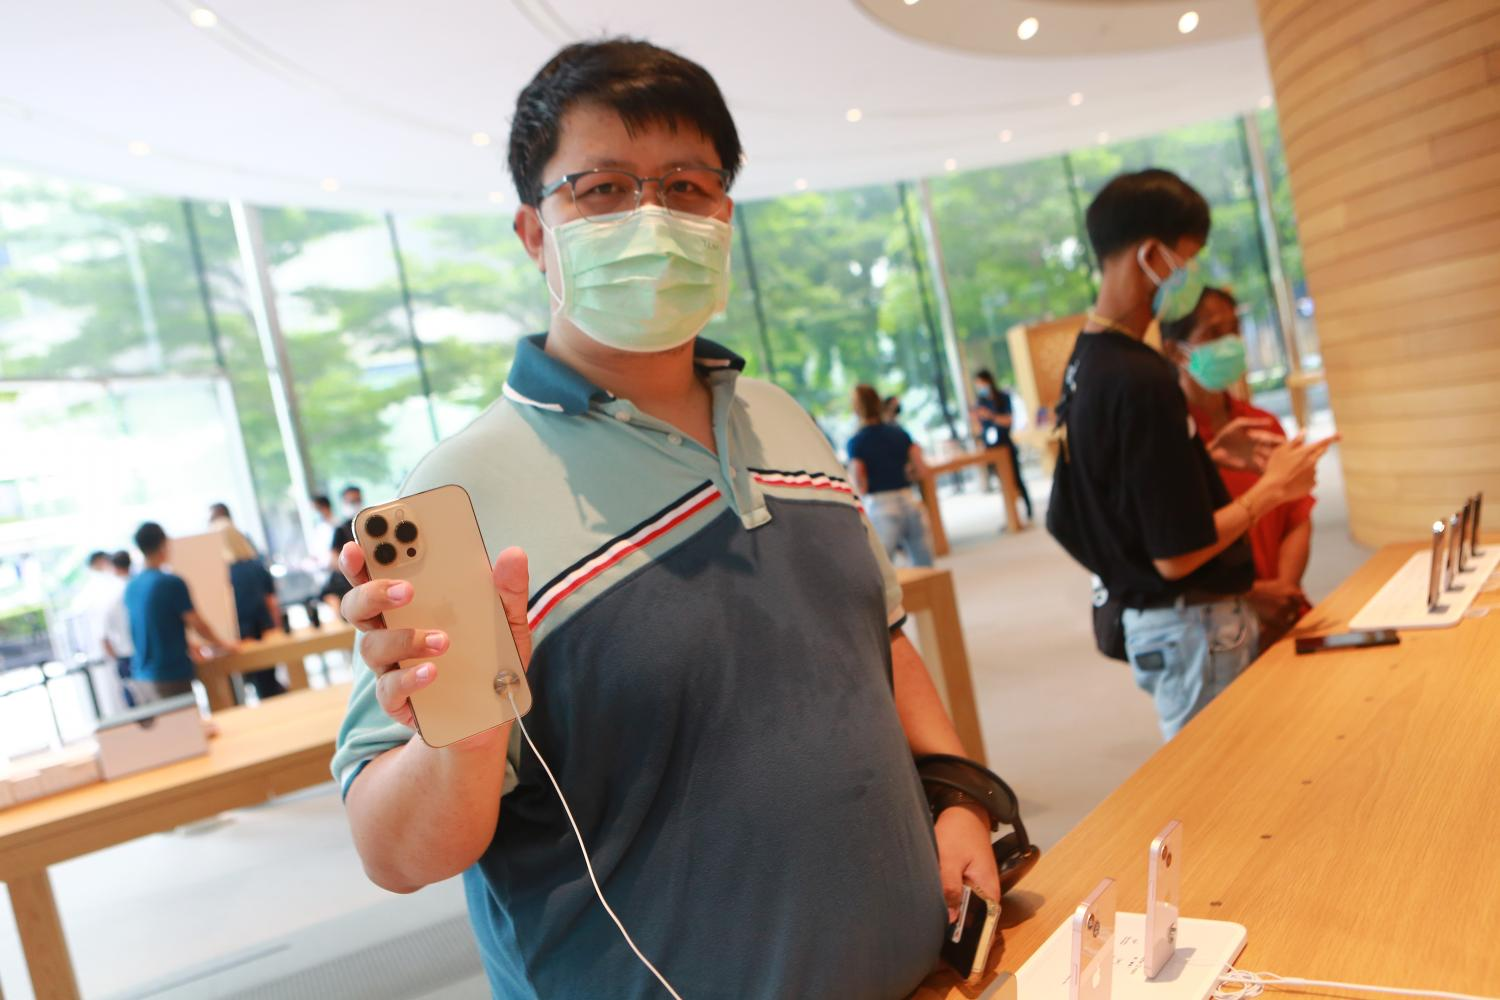 Customers inside the Apple store at CentralWorld yesterday, the release date for the new iPhone 13 series.